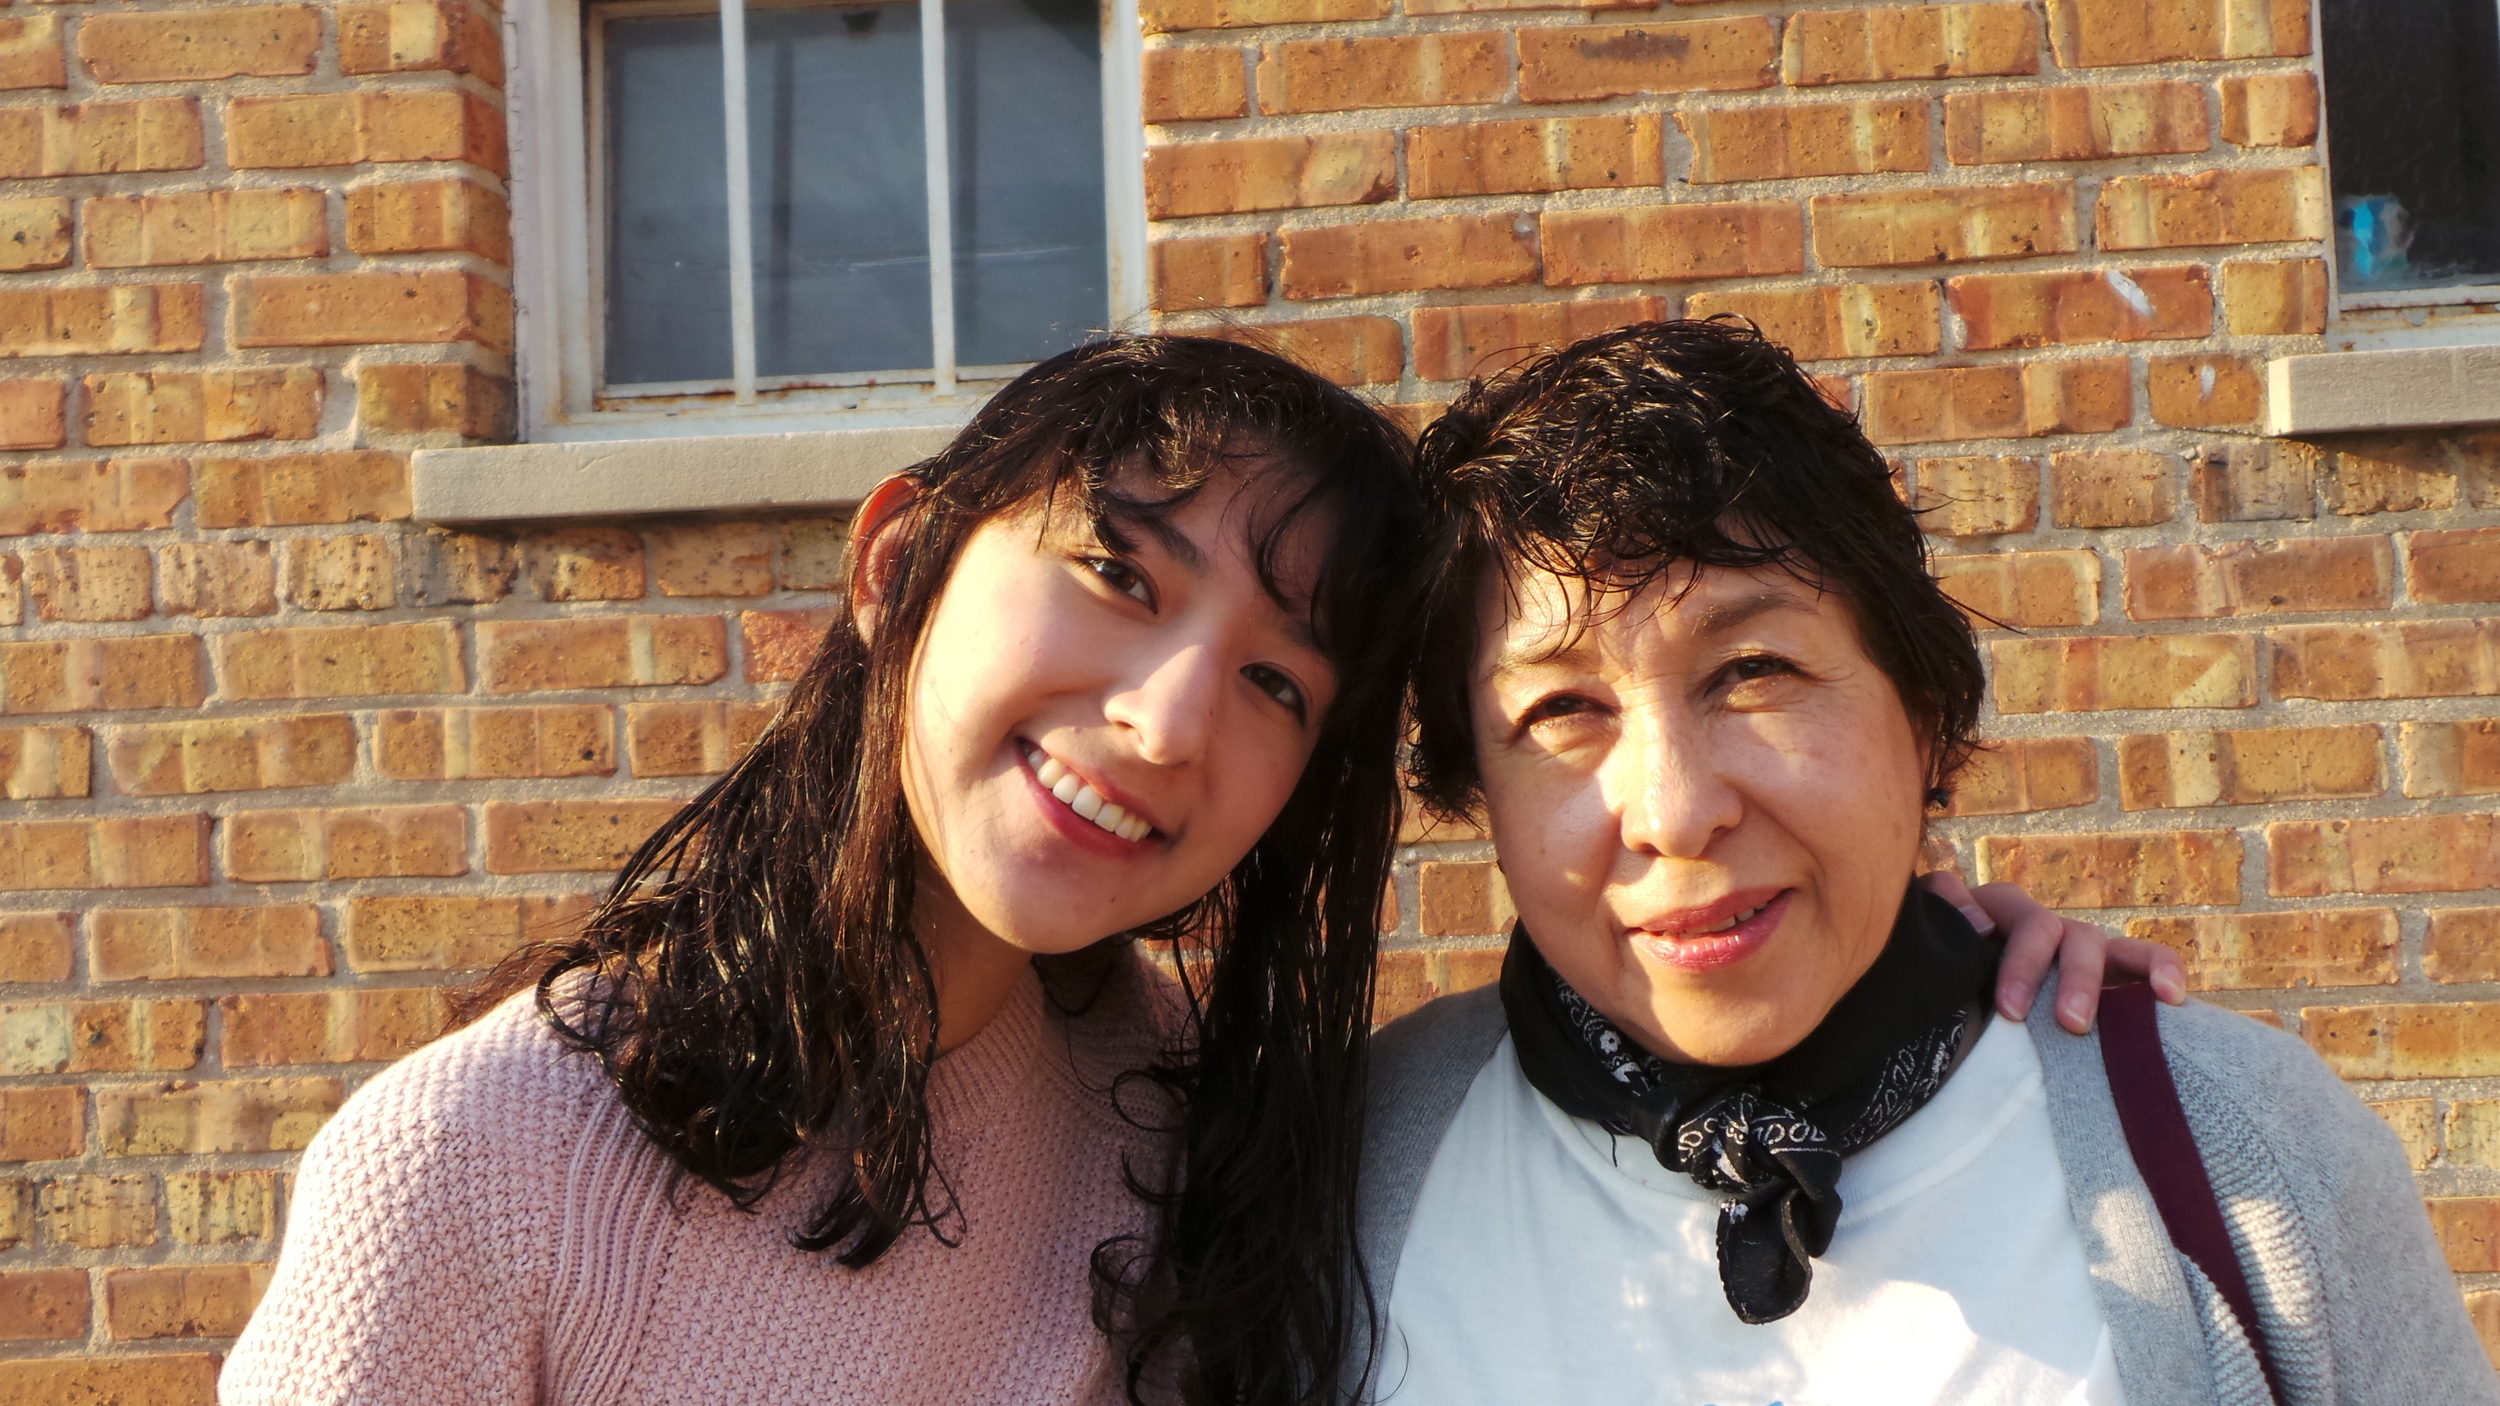 Maria Esther Sanchez and her mother, Maria Esther Bolaños, a member of Latino Union